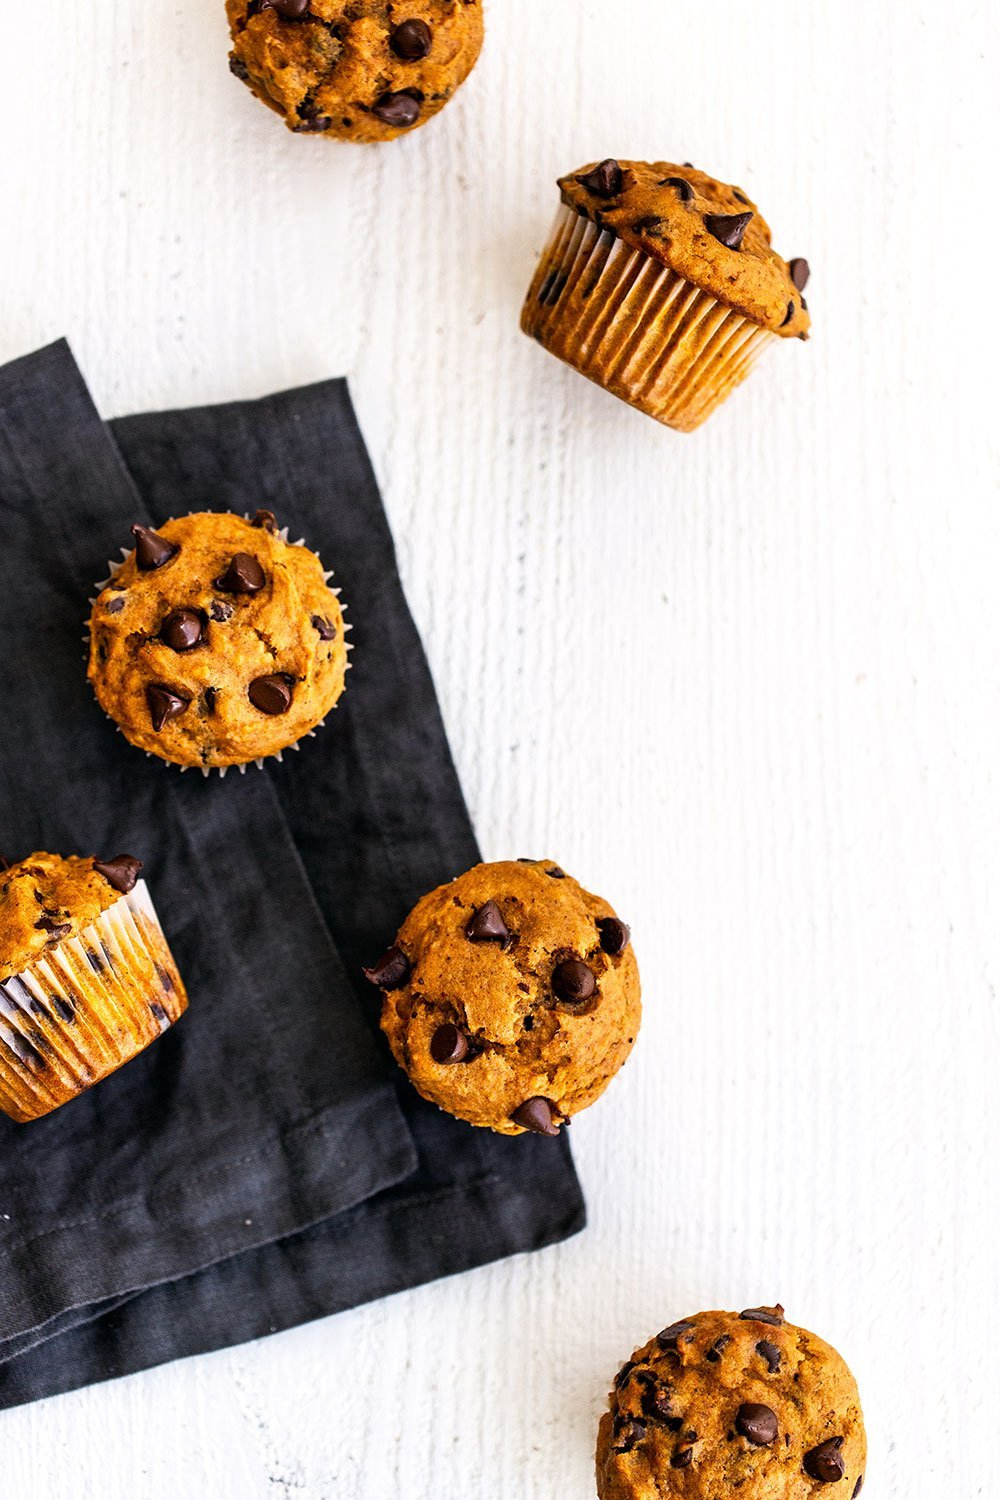 Pumpkin chocolate chip muffins with a napkin